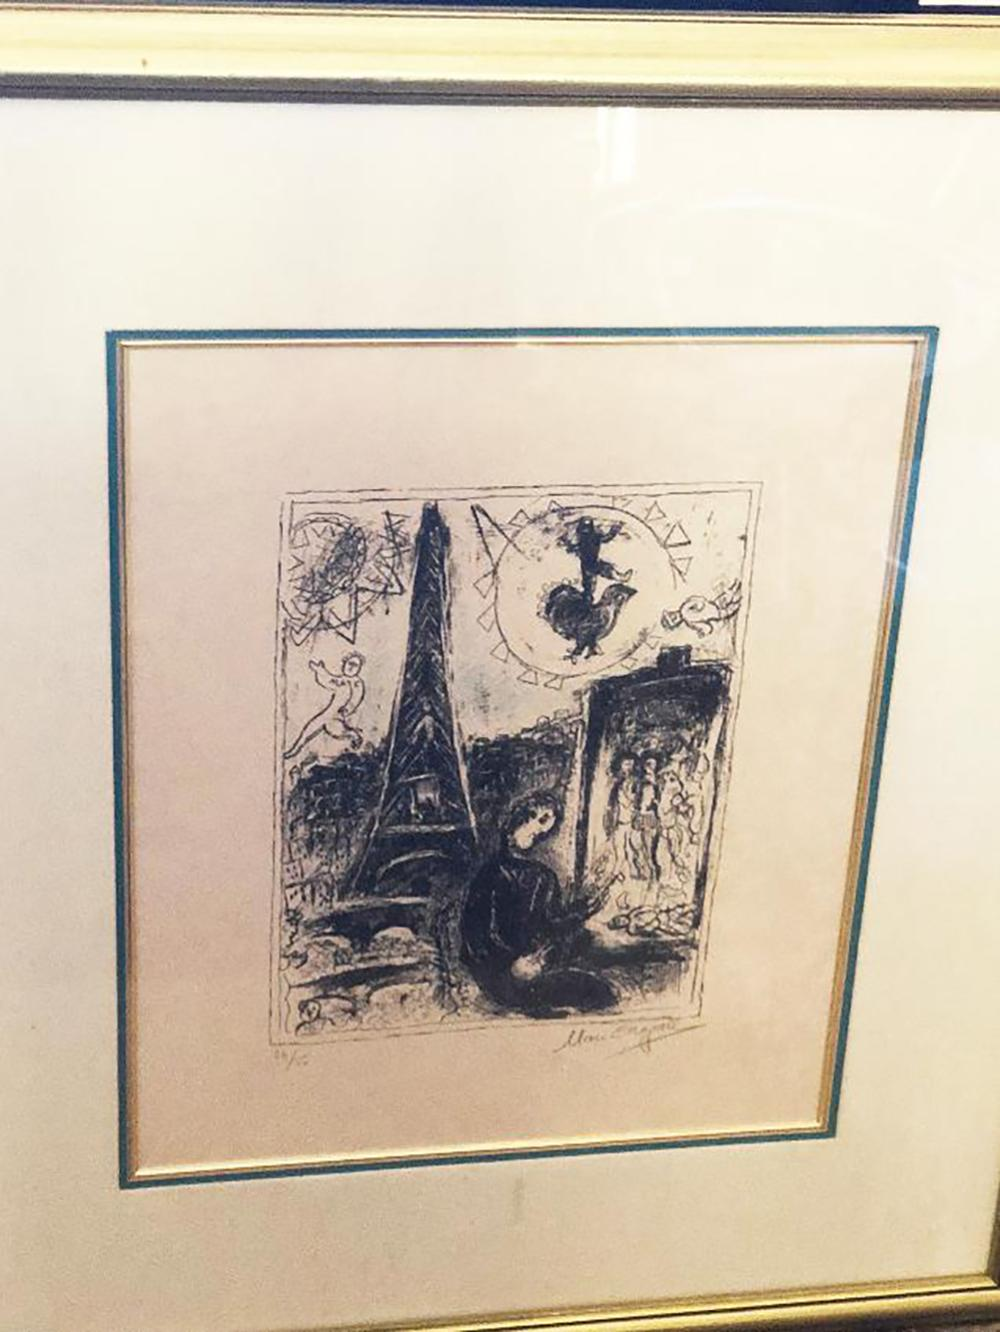 The Painter at Eiffel Tower  Marc Chagall Original Lithograph Hand signed and numbered 24 of 50 edition. Approx 20x17 inches image size. Limited Edition Hand signed and numbered. lithograph